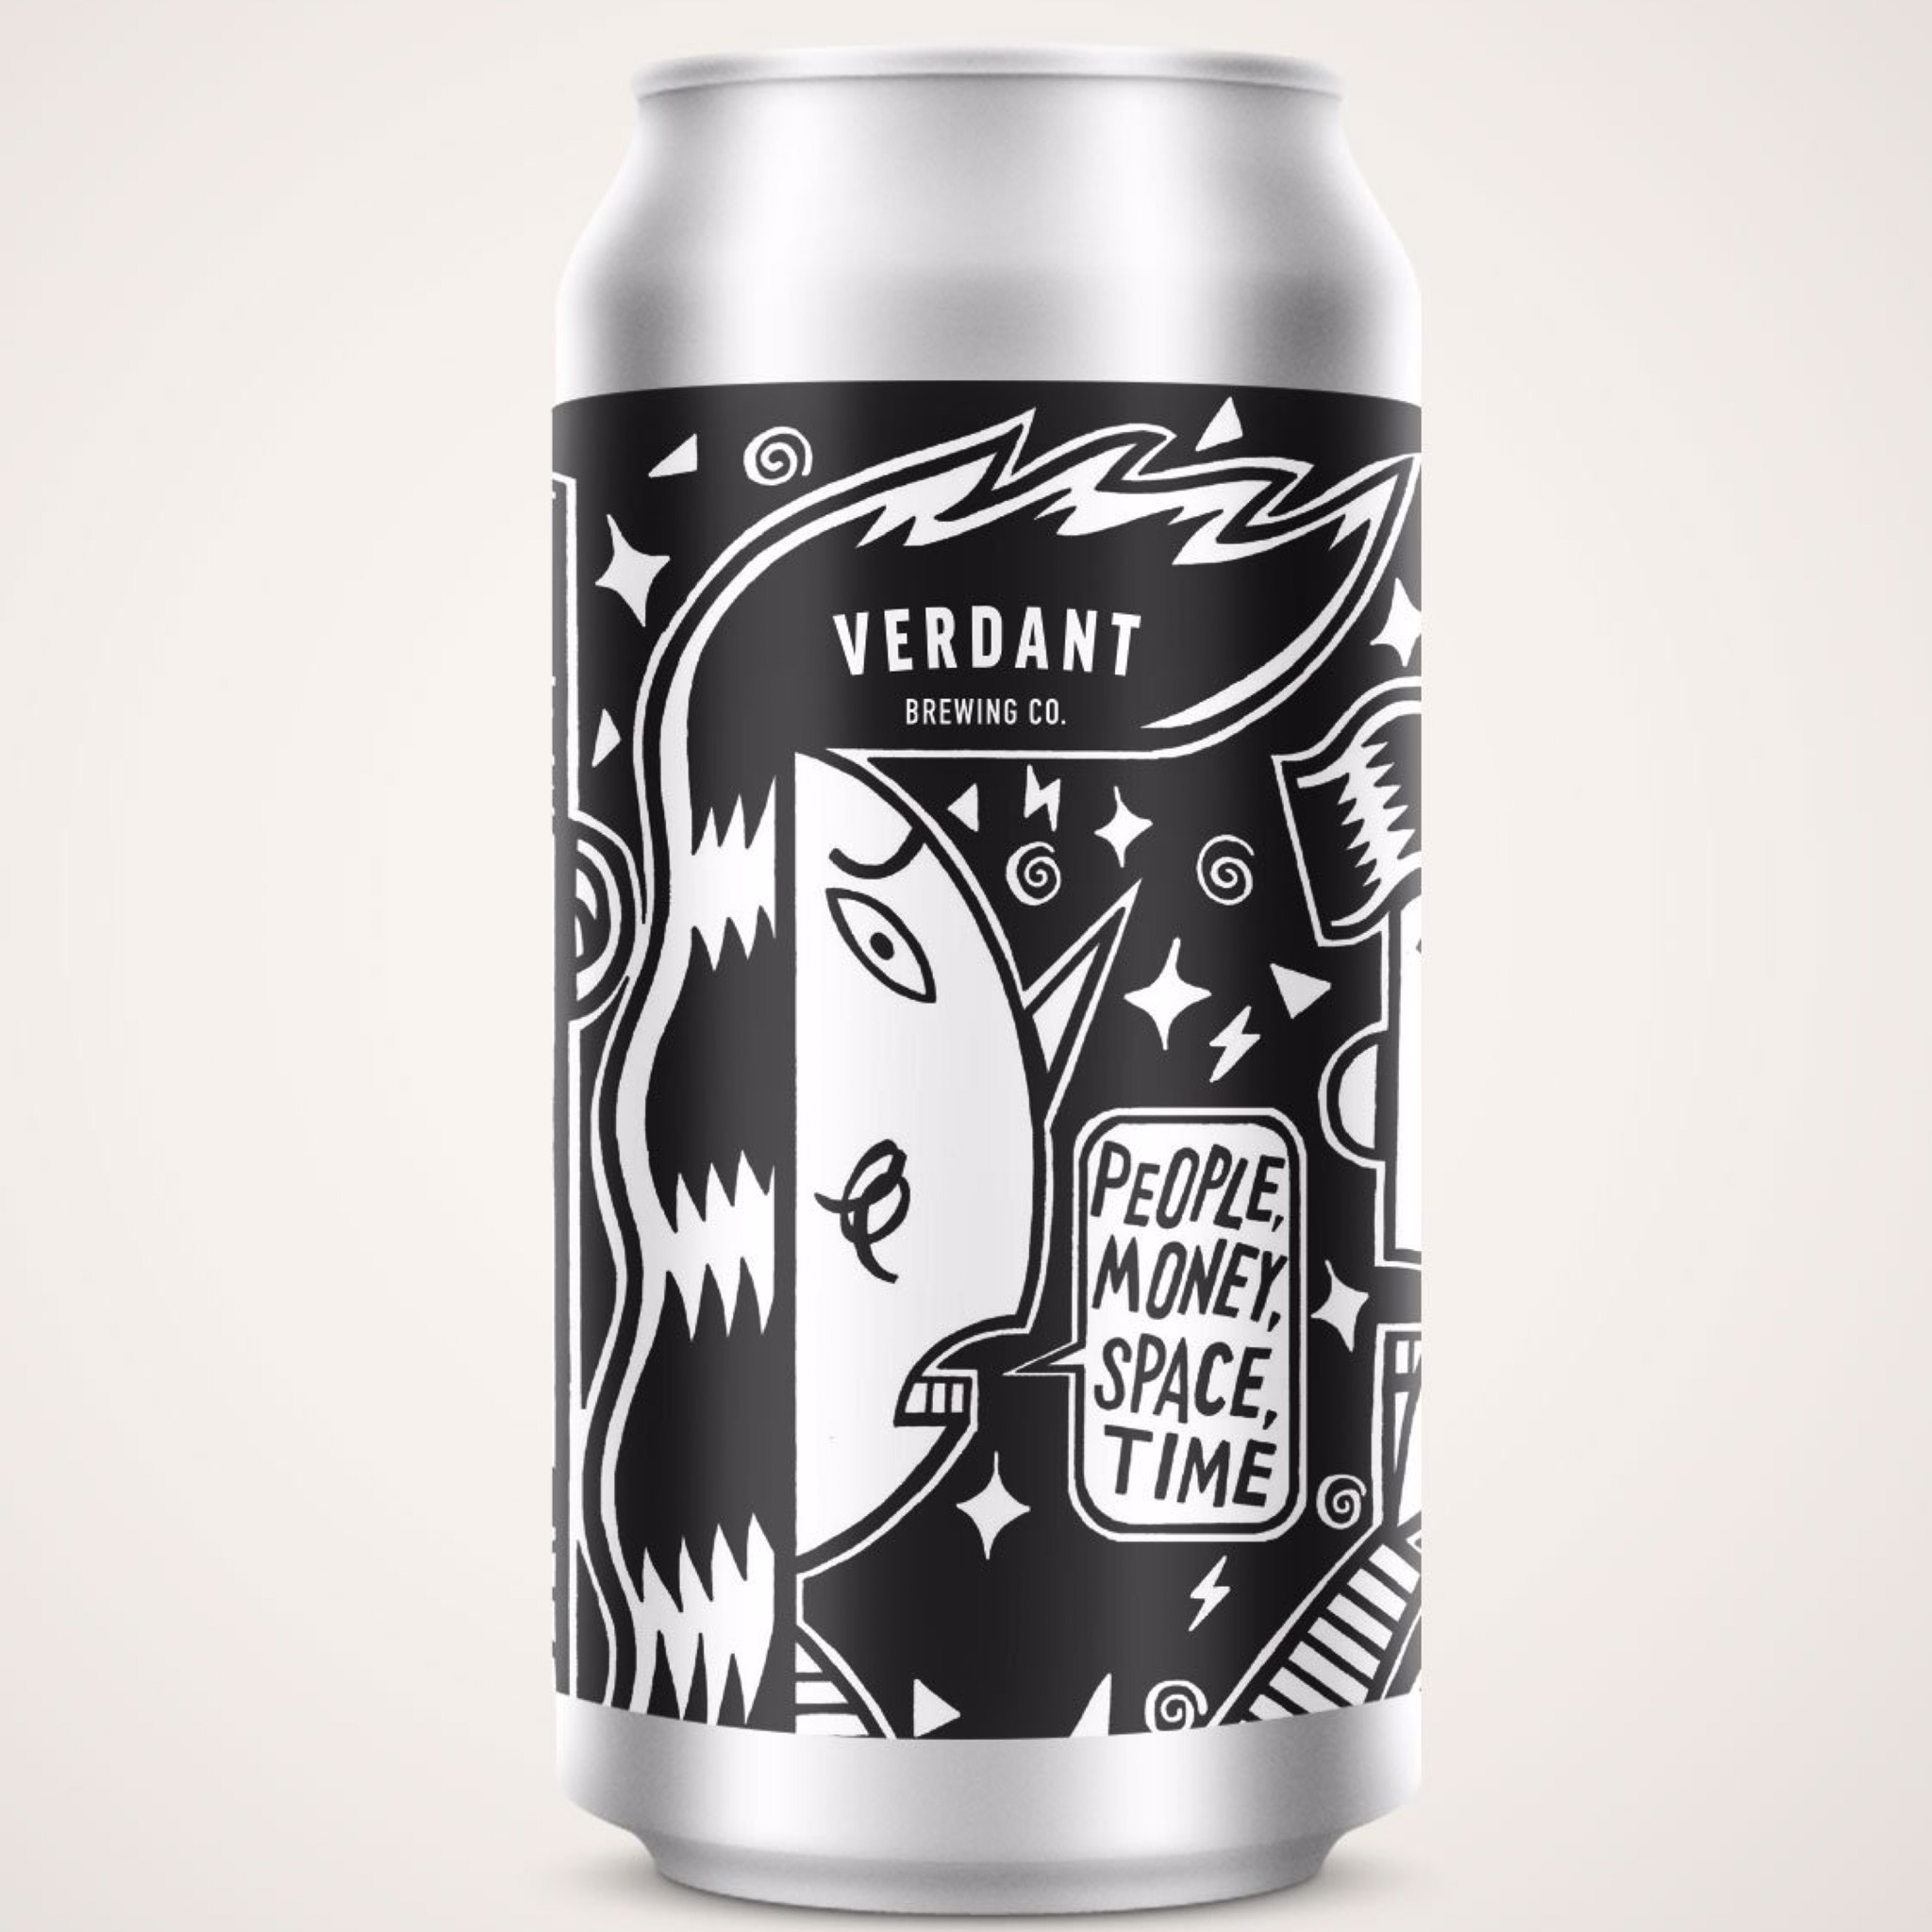 People, Money, Space, Time - Pale Ale 3.8% 440ml Verdant Brewing